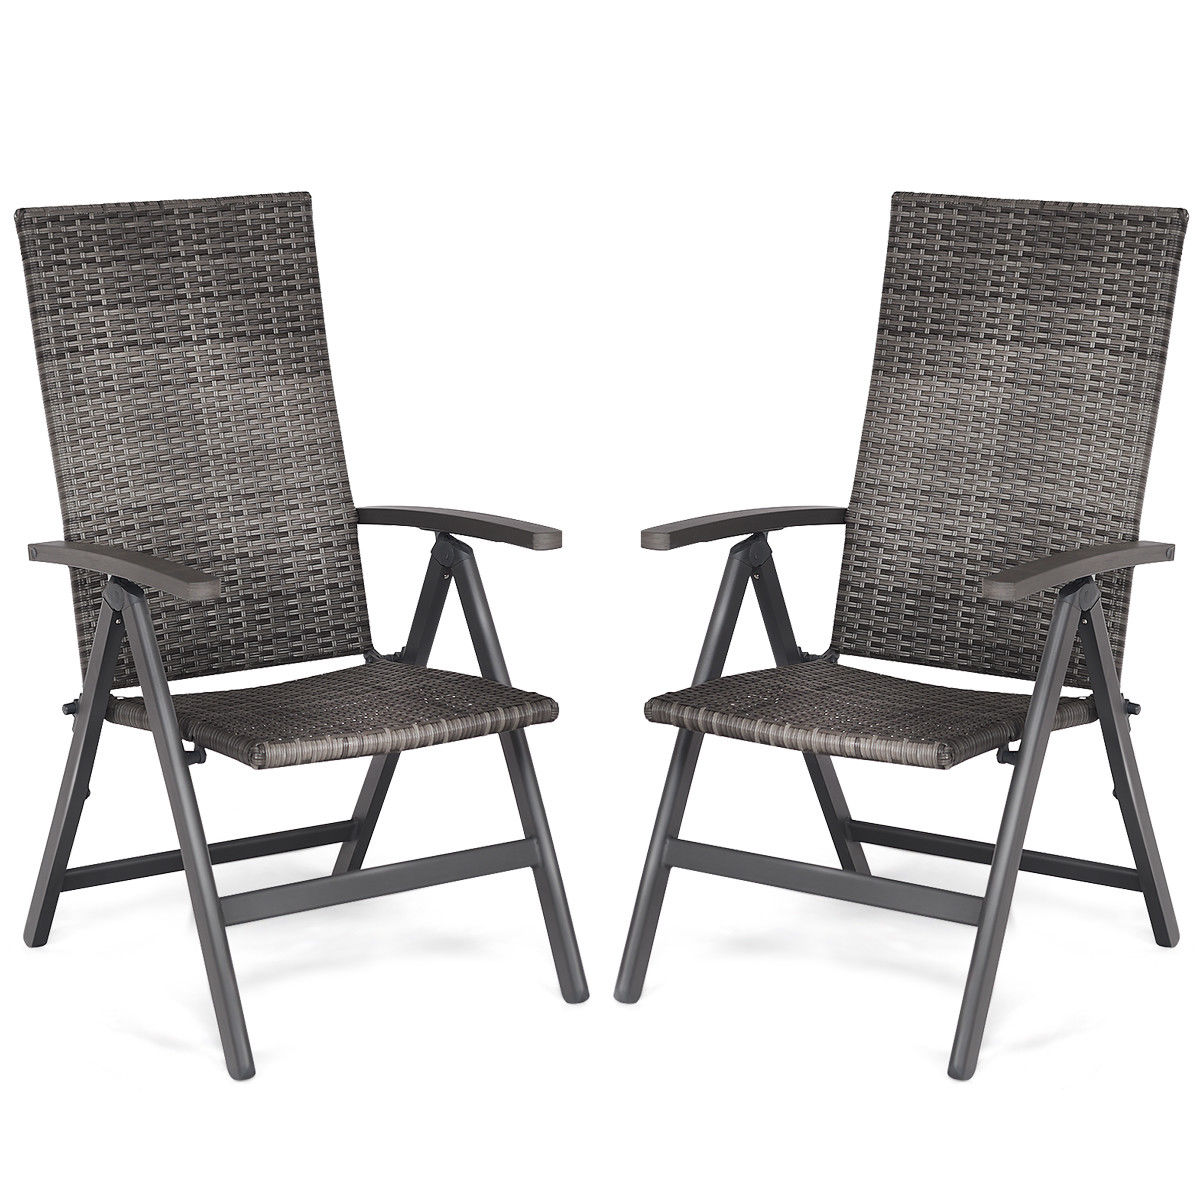 vinyl folding lawn chairs gas fire pit and chair set walmart com product image costway 2 pcs rattan reclining outdoor wicker portable armrest